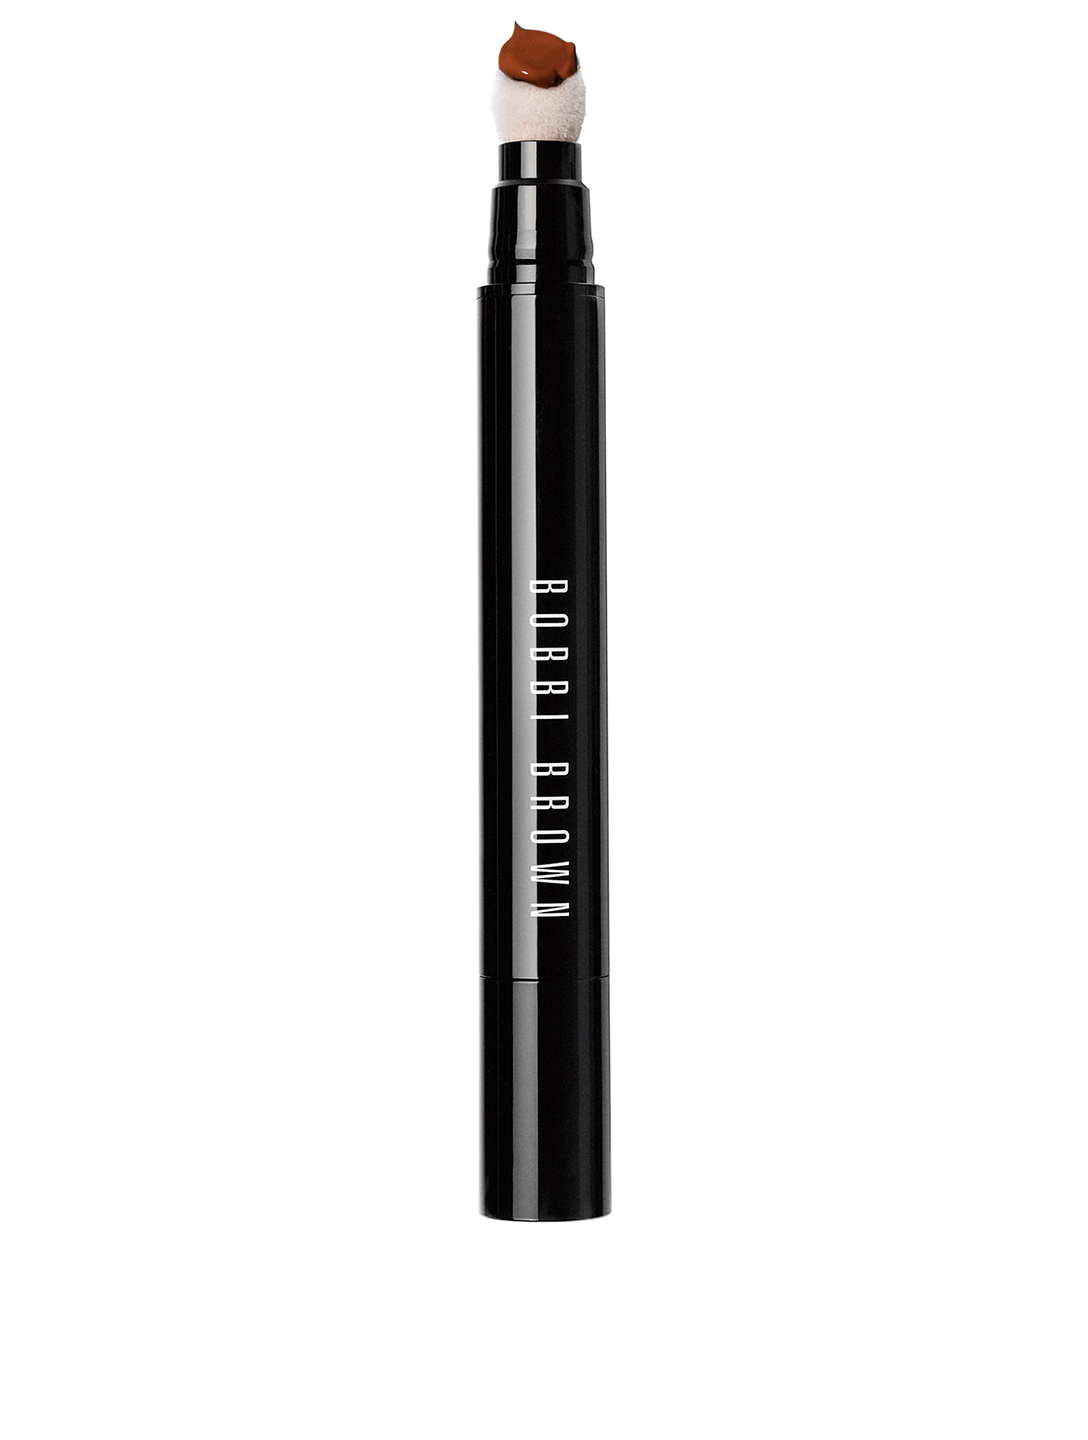 BOBBI BROWN Stylo retouche perfection teint Beauté Marron